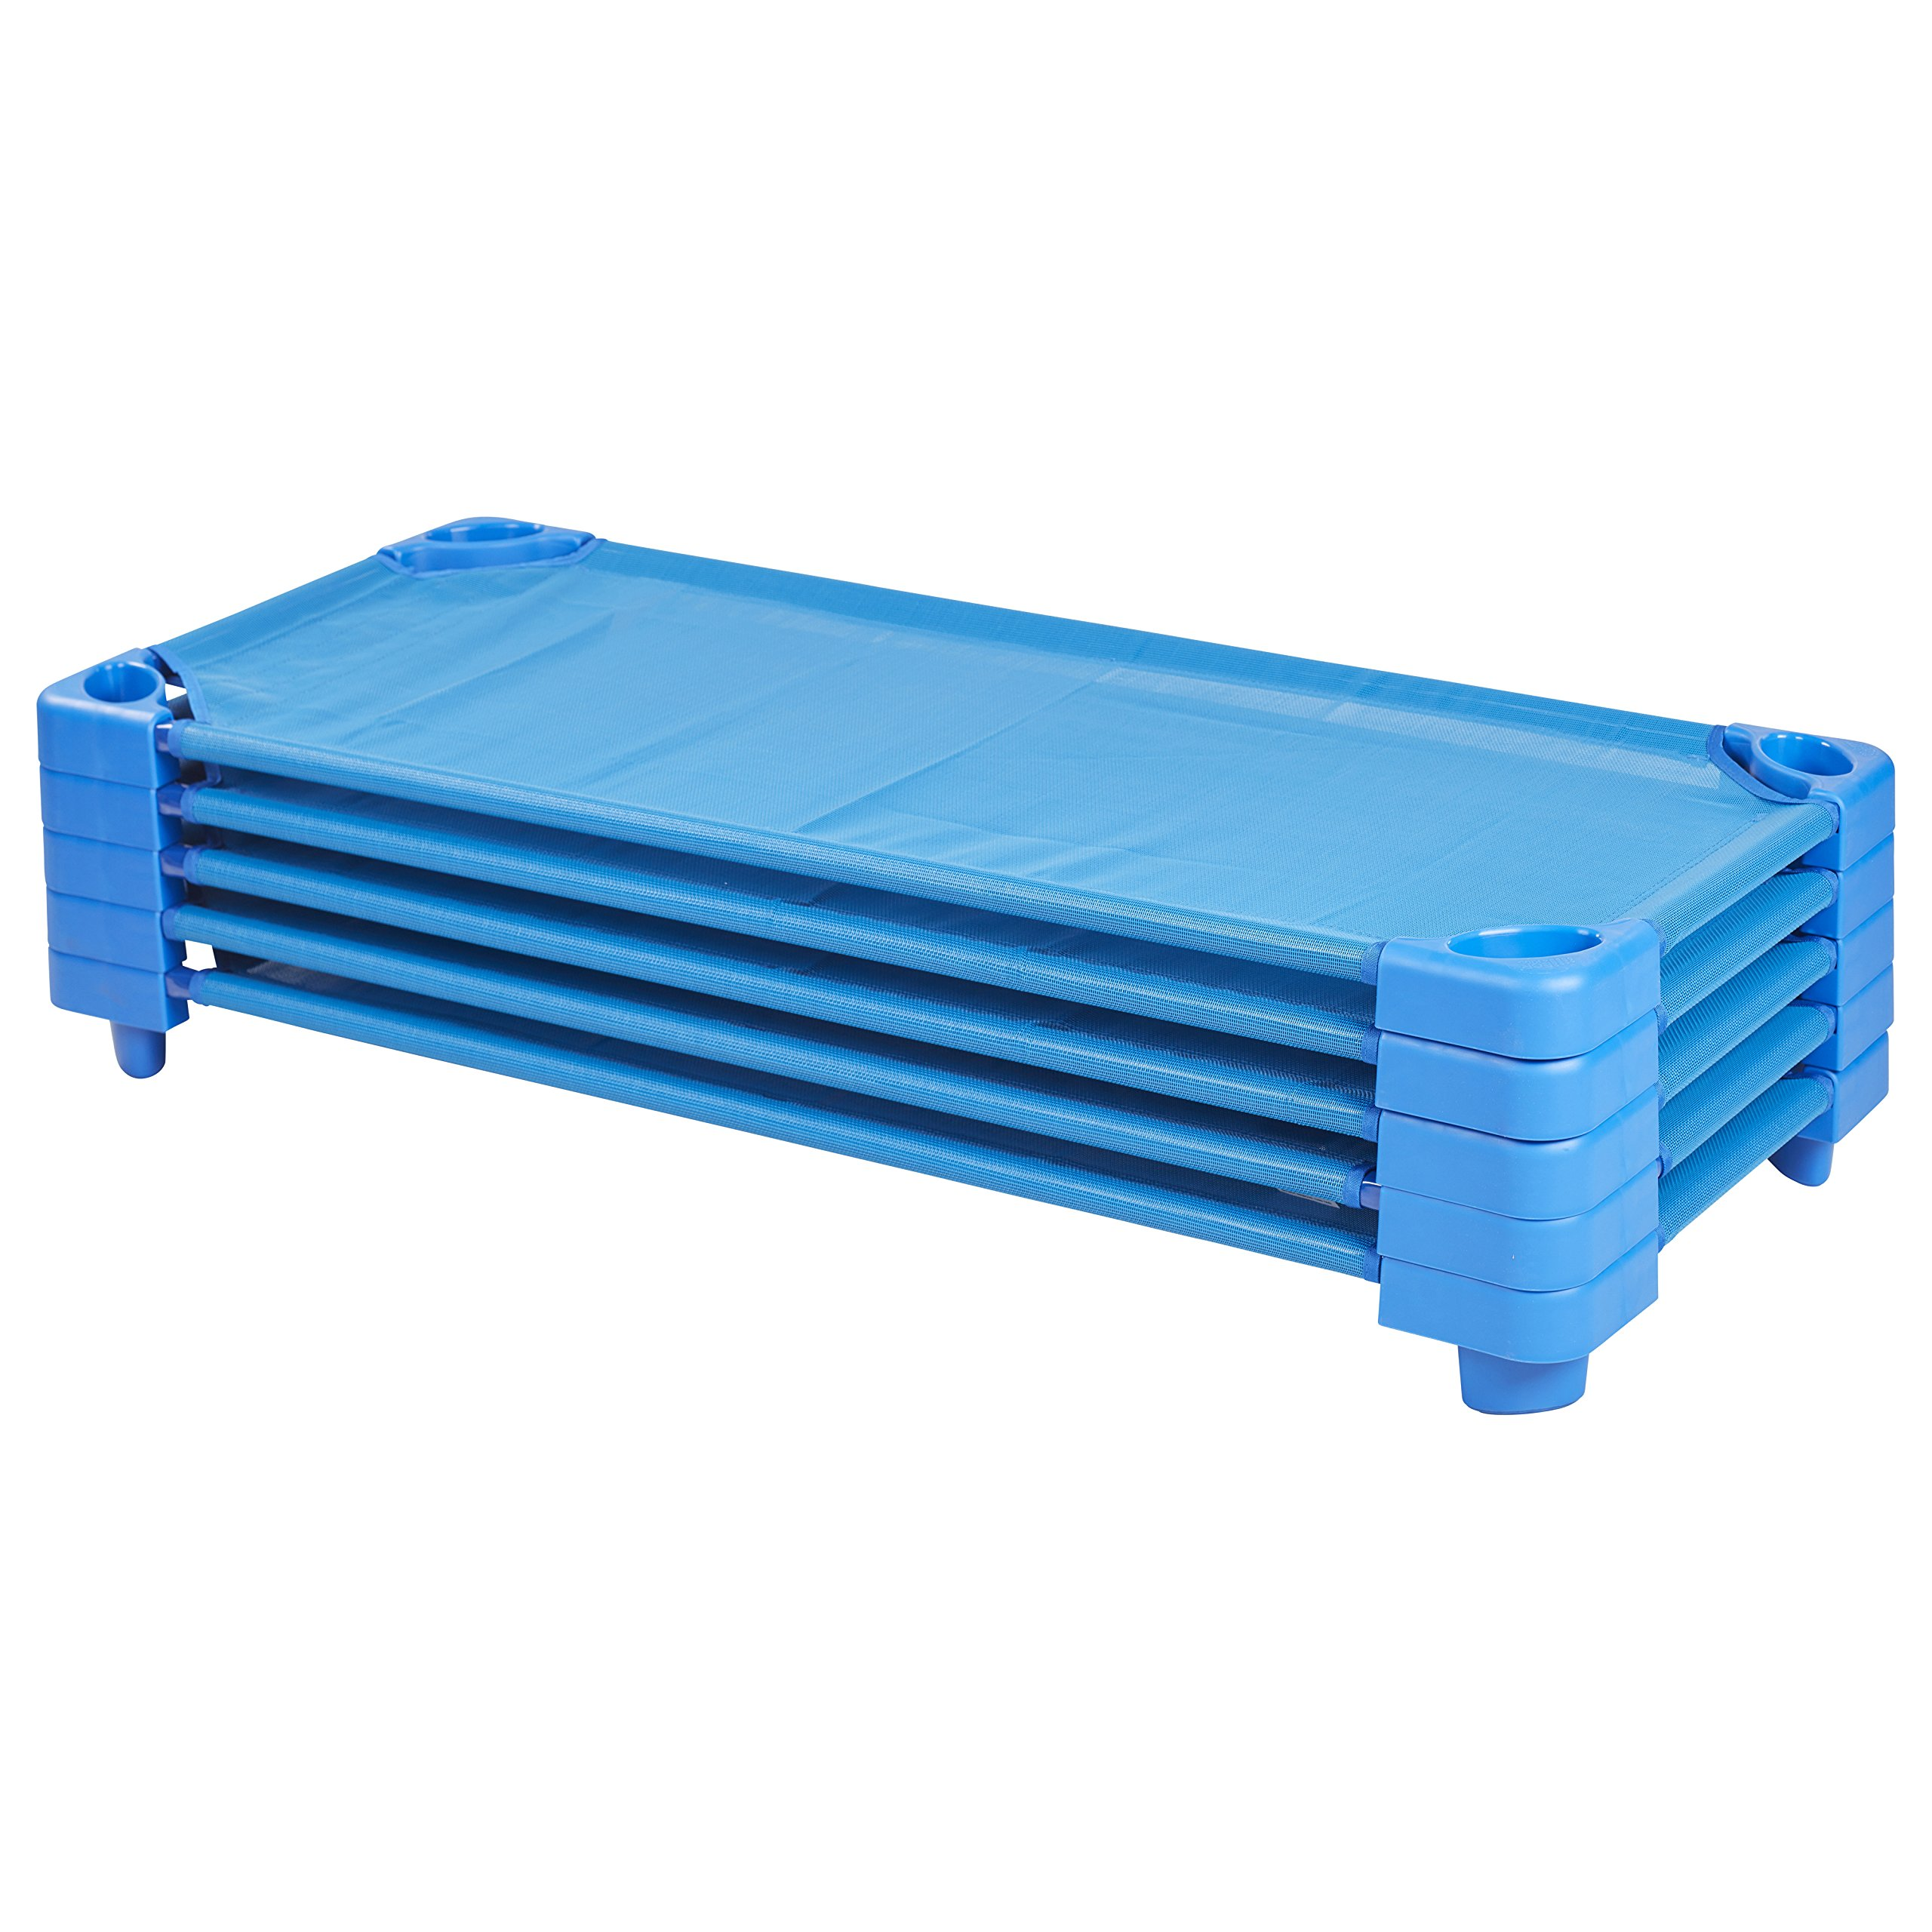 ECR4Kids Children's Naptime Cot, Stackable Daycare Sleeping Cot for Kids, 52'' L x 23'' W, Assembled, Blue (Set of 5)